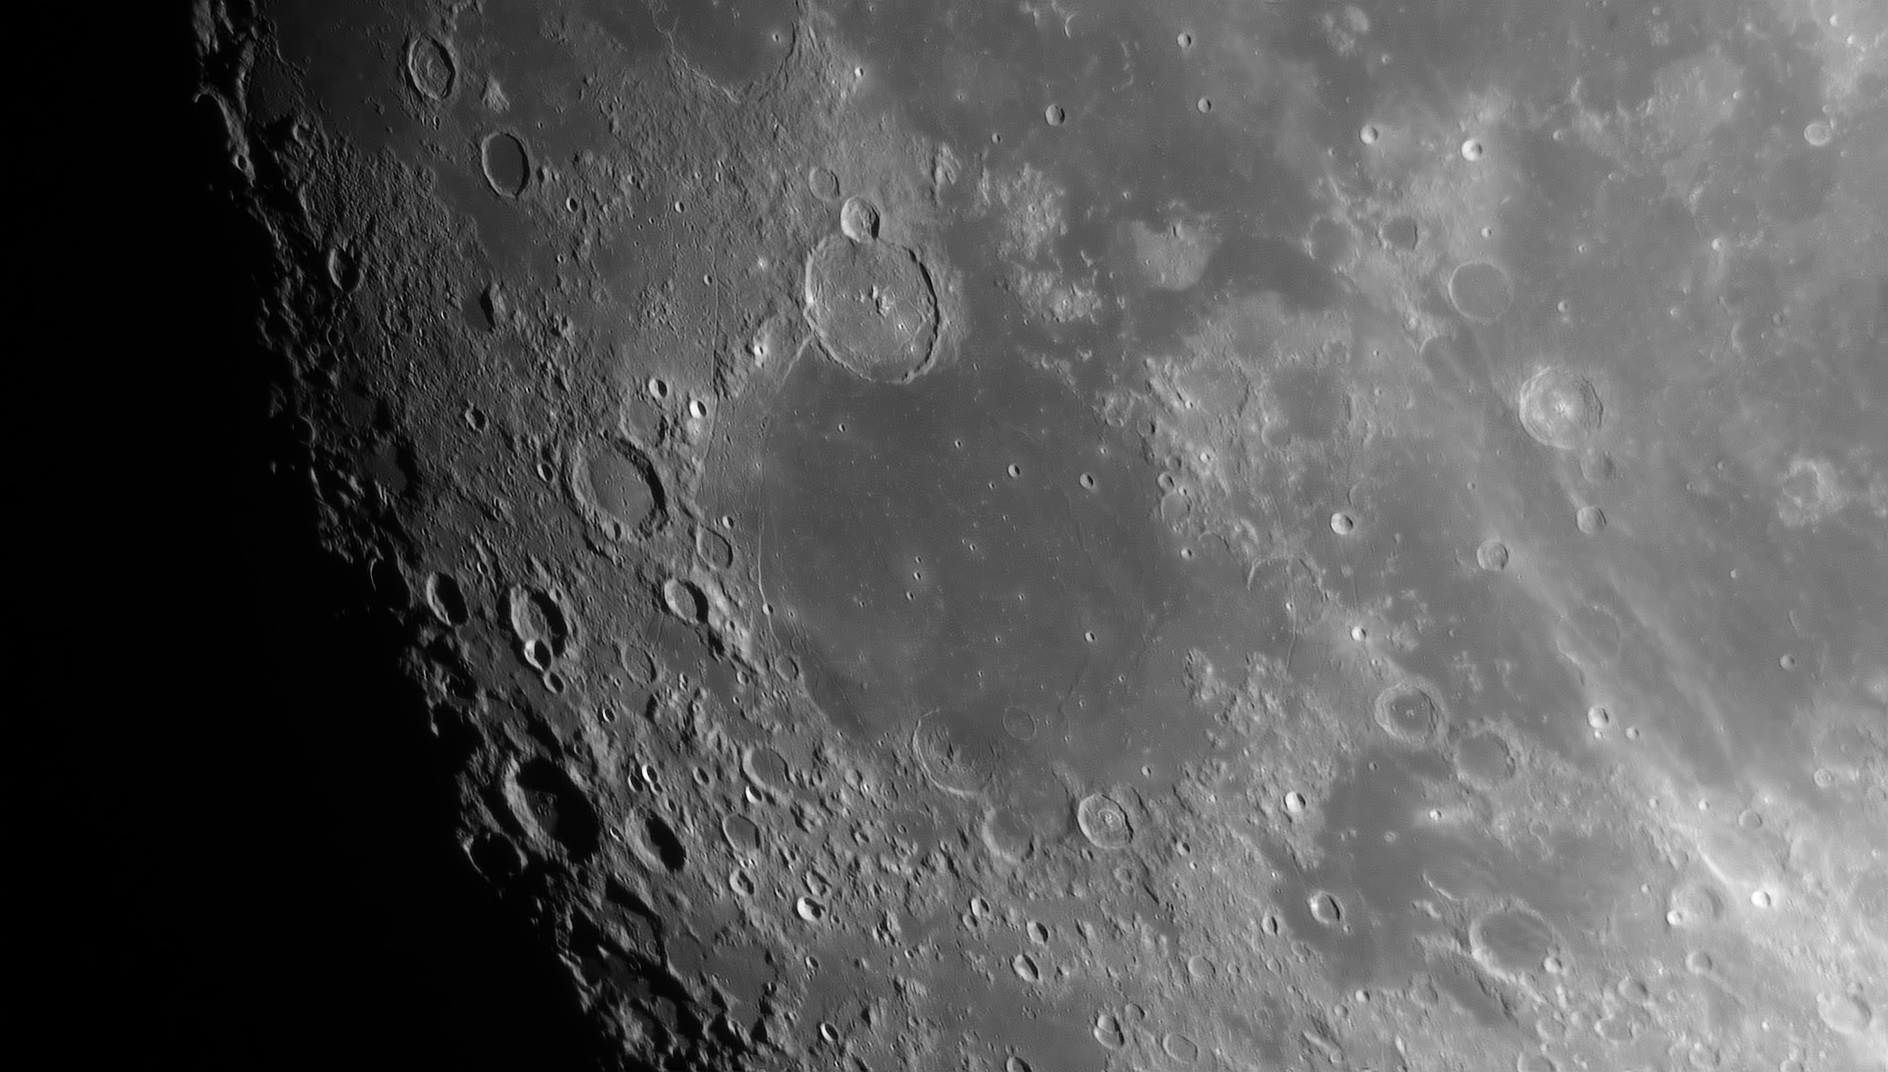 600fae8dec8bb_Moon_211726_250121_ZWOASI290MM_R-ccd_AS_P20_lapl5_ap662.jpg.946cd11a7db44bd6fd9b317d7c222fb8.jpg